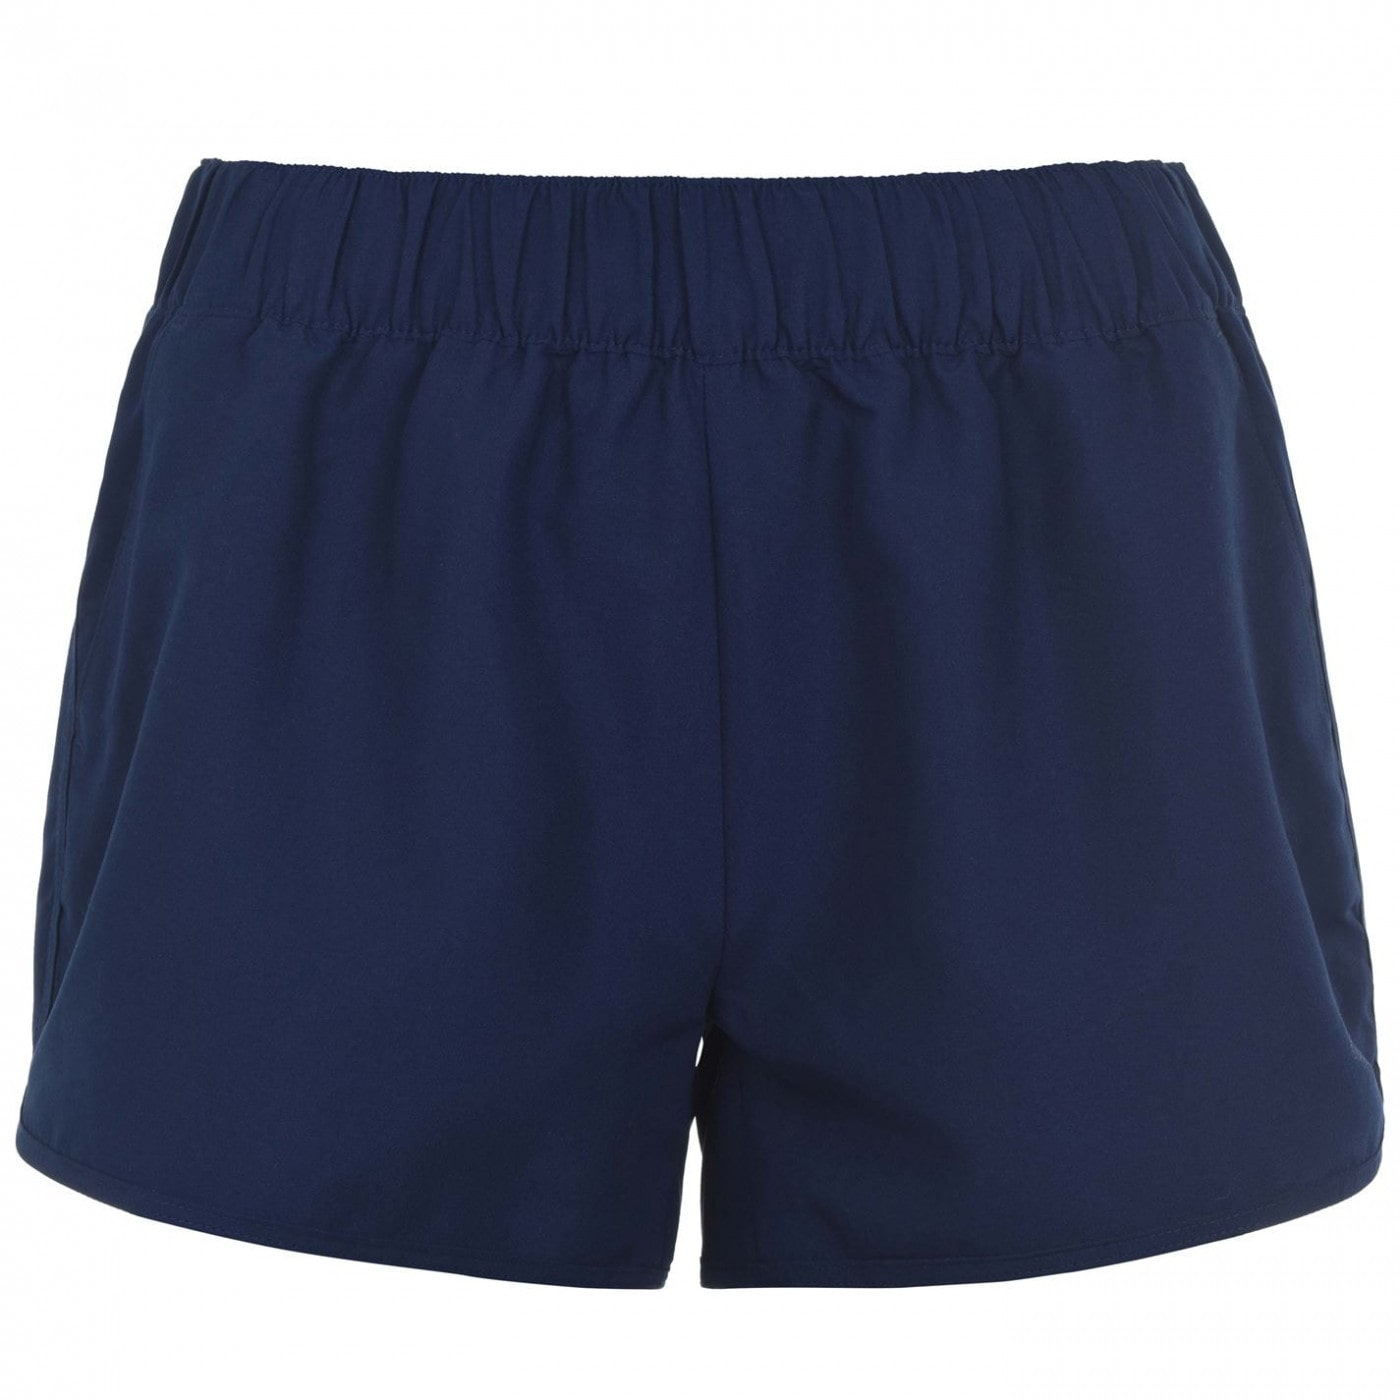 Hot Tuna Swim Shorts Ladies